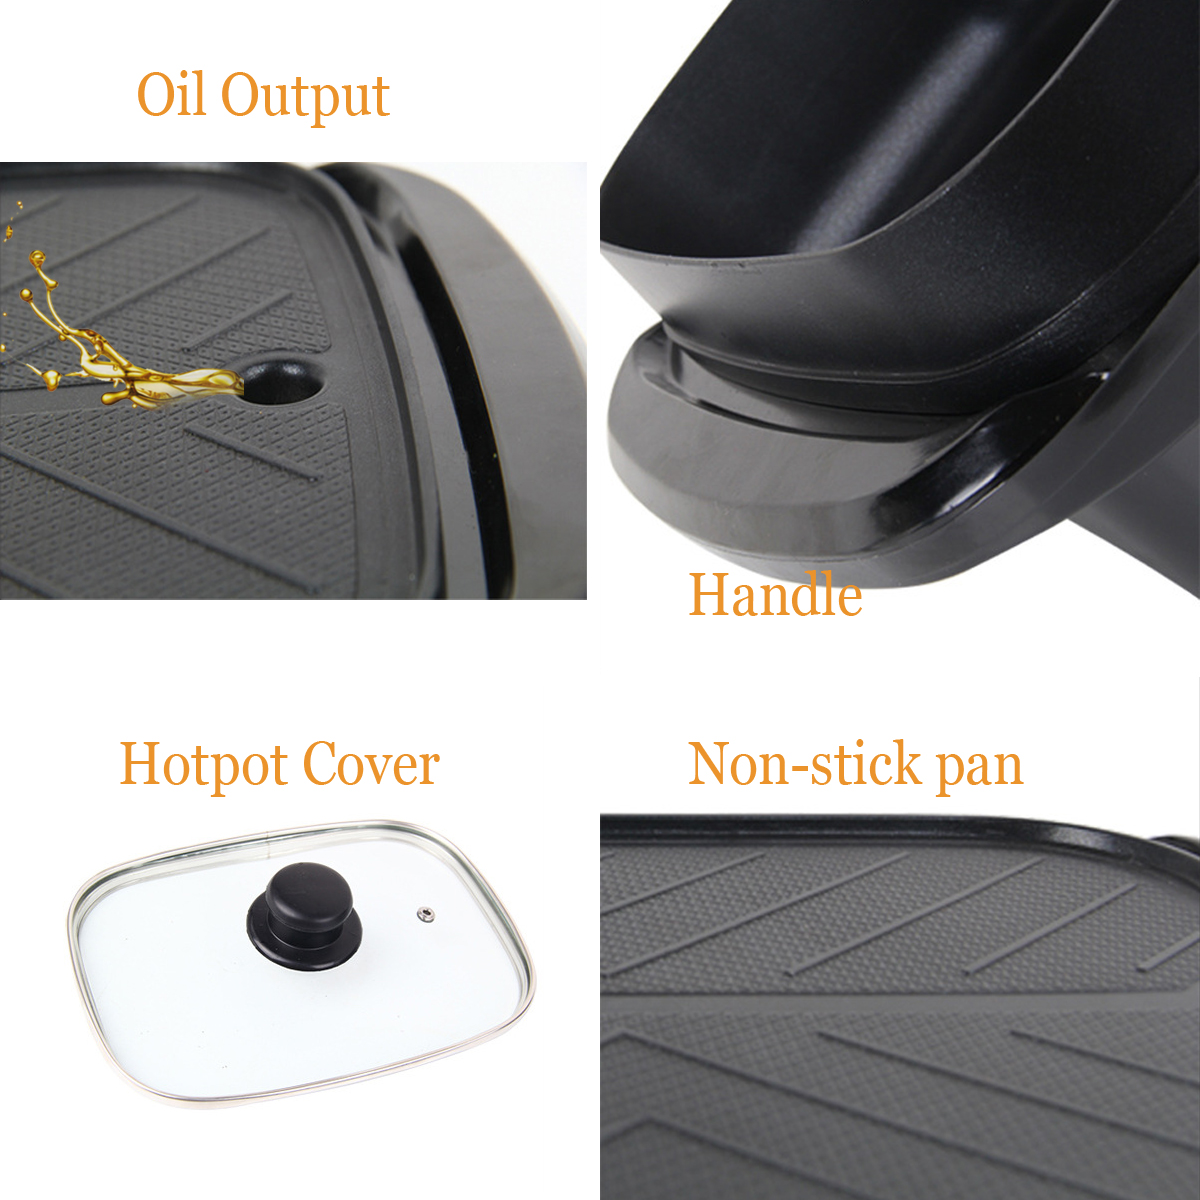 2-In-1 220V 1360W Electric Teppanyaki Barbecue BBQ Grill Pan Table Hotpot Oven Cooking Stove